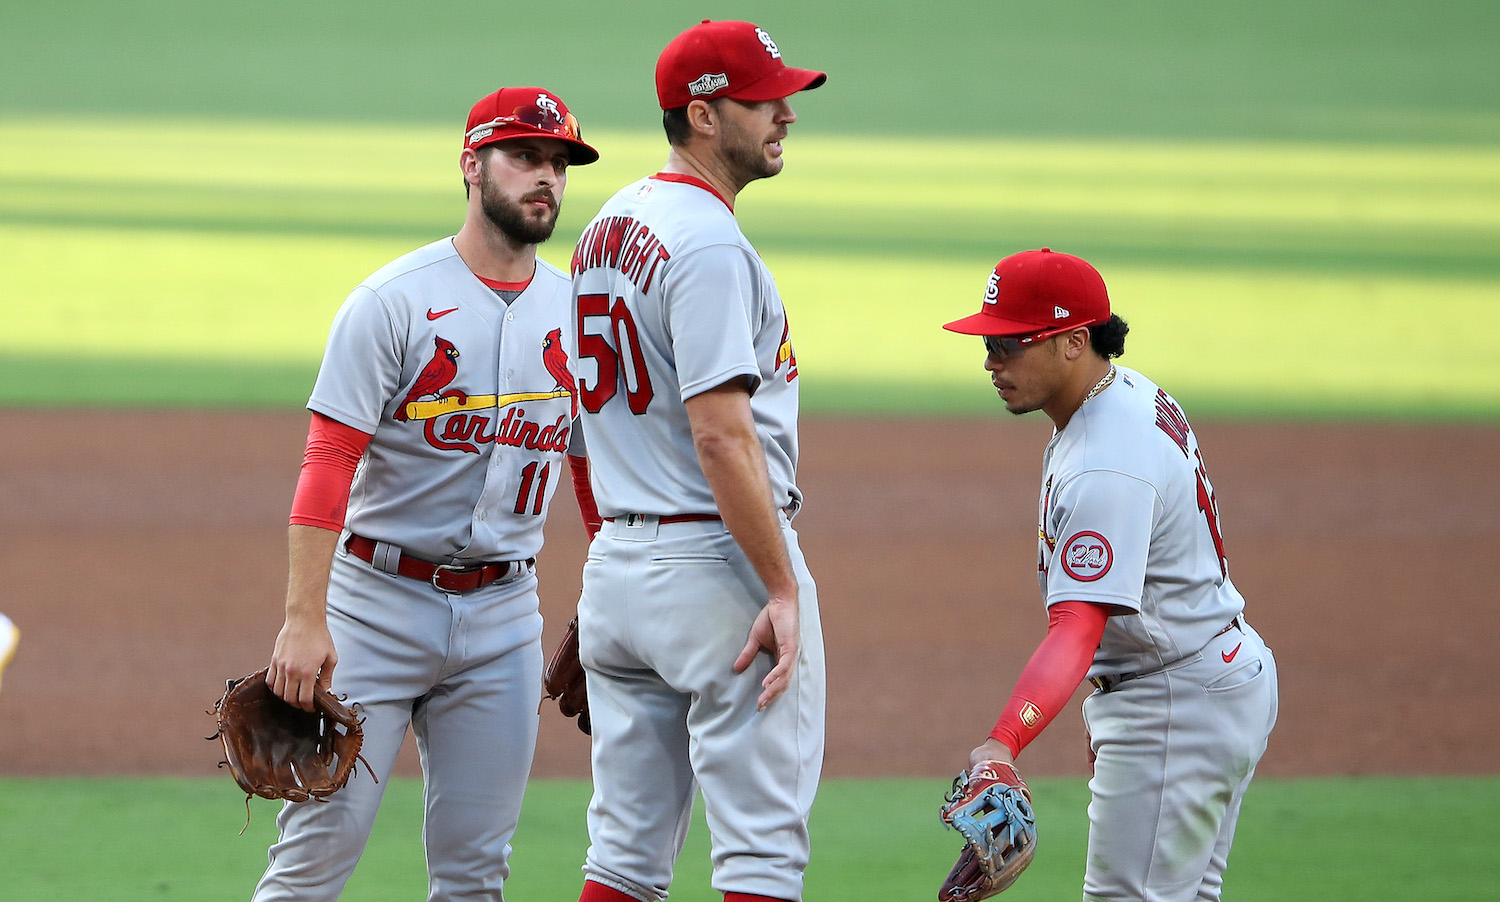 SAN DIEGO, CALIFORNIA - OCTOBER 01: Paul DeJong #11, and Kolten Wong #16 talk with Adam Wainwright #50 of the St. Louis Cardinals as he was being pulled from the game as Wil Myers #4 of the San Diego Padres walks to third base during the fourth inning of Game Two of the National League Wild Card Series at PETCO Park on October 01, 2020 in San Diego, California. (Photo by Sean M. Haffey/Getty Images)